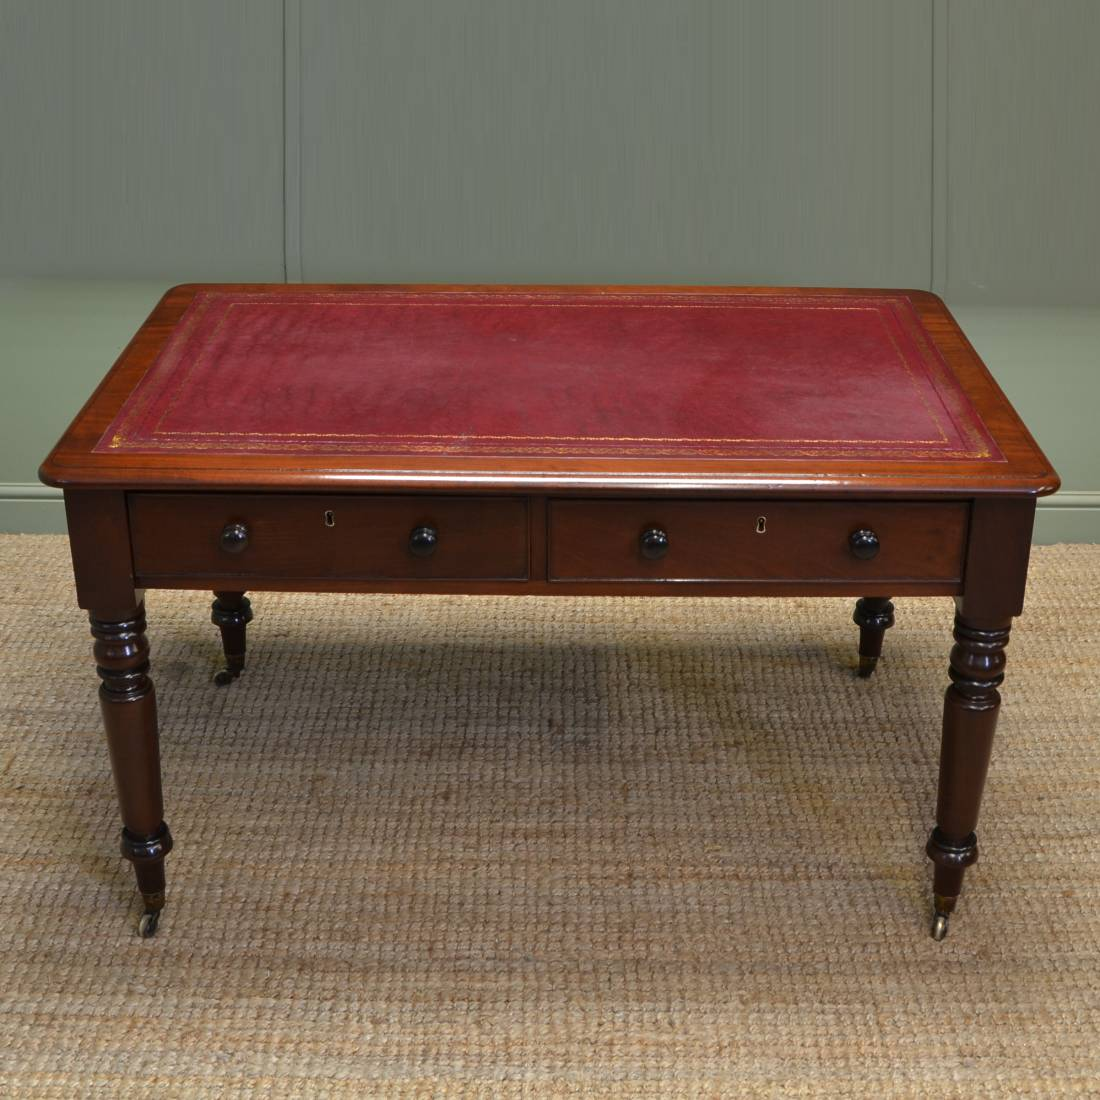 writing table desk Mahogany an more is a full service retailer bringing high end furniture at mid-level prices.